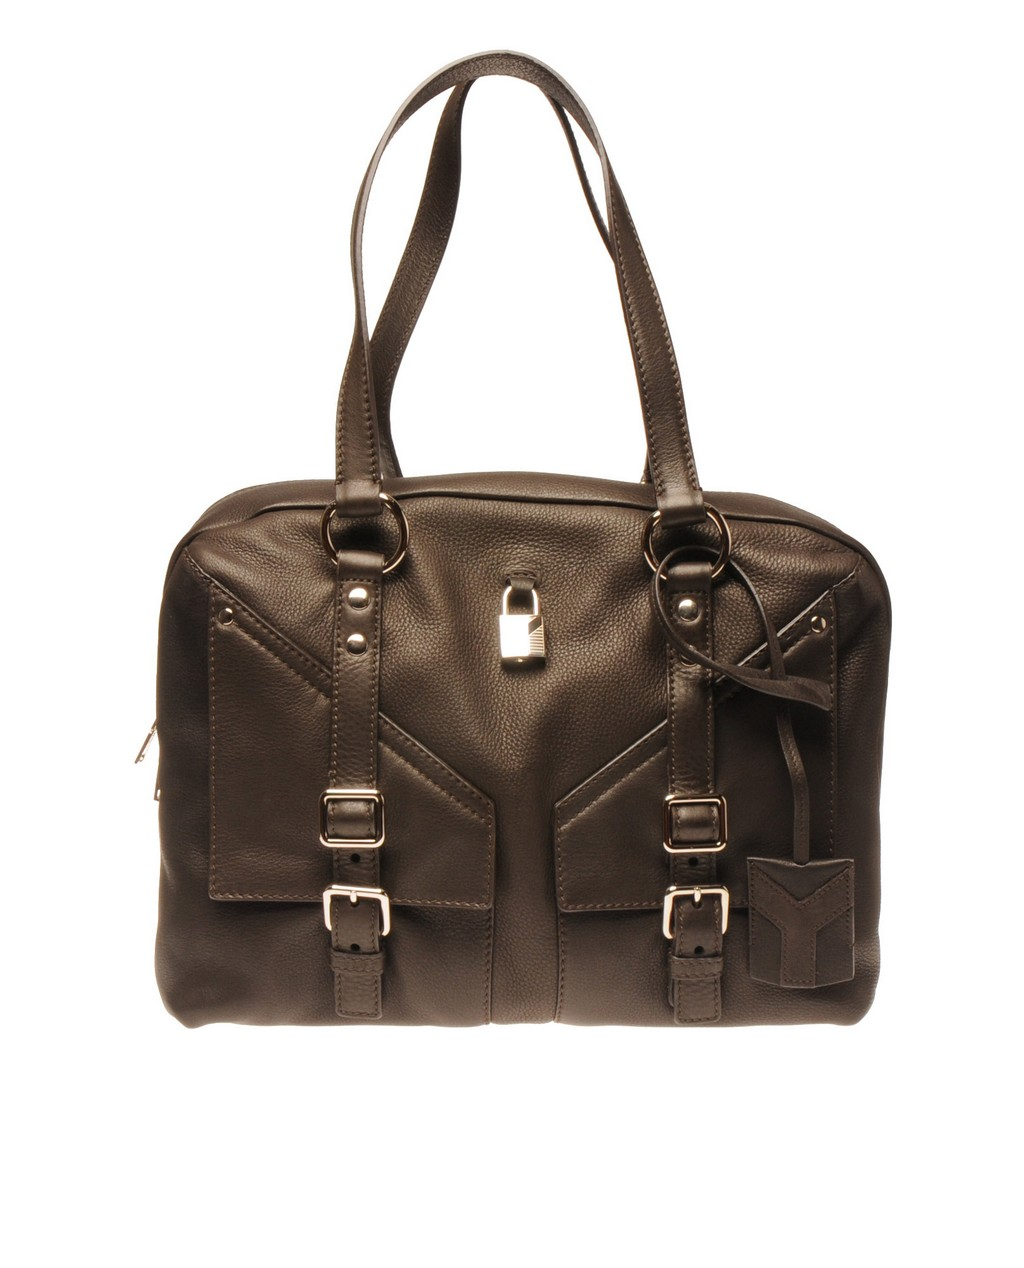 leather satchel backpack oxford satchel brown leather satchel bag